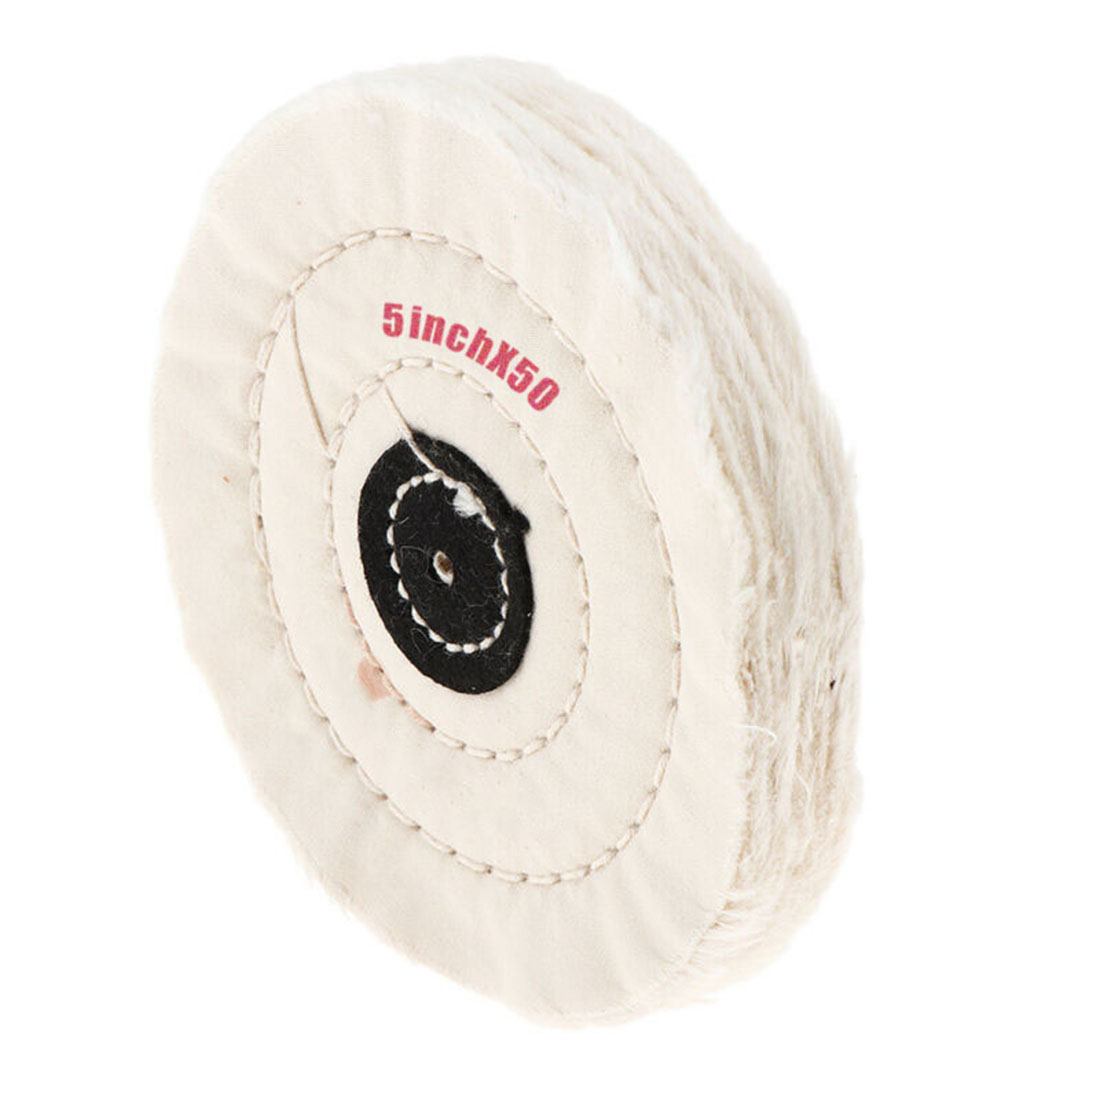 5inch 50 Layer Cotton Cloth Buffing Wheel Pad Polishing Jewelry Accessories For Non-metallic Materials